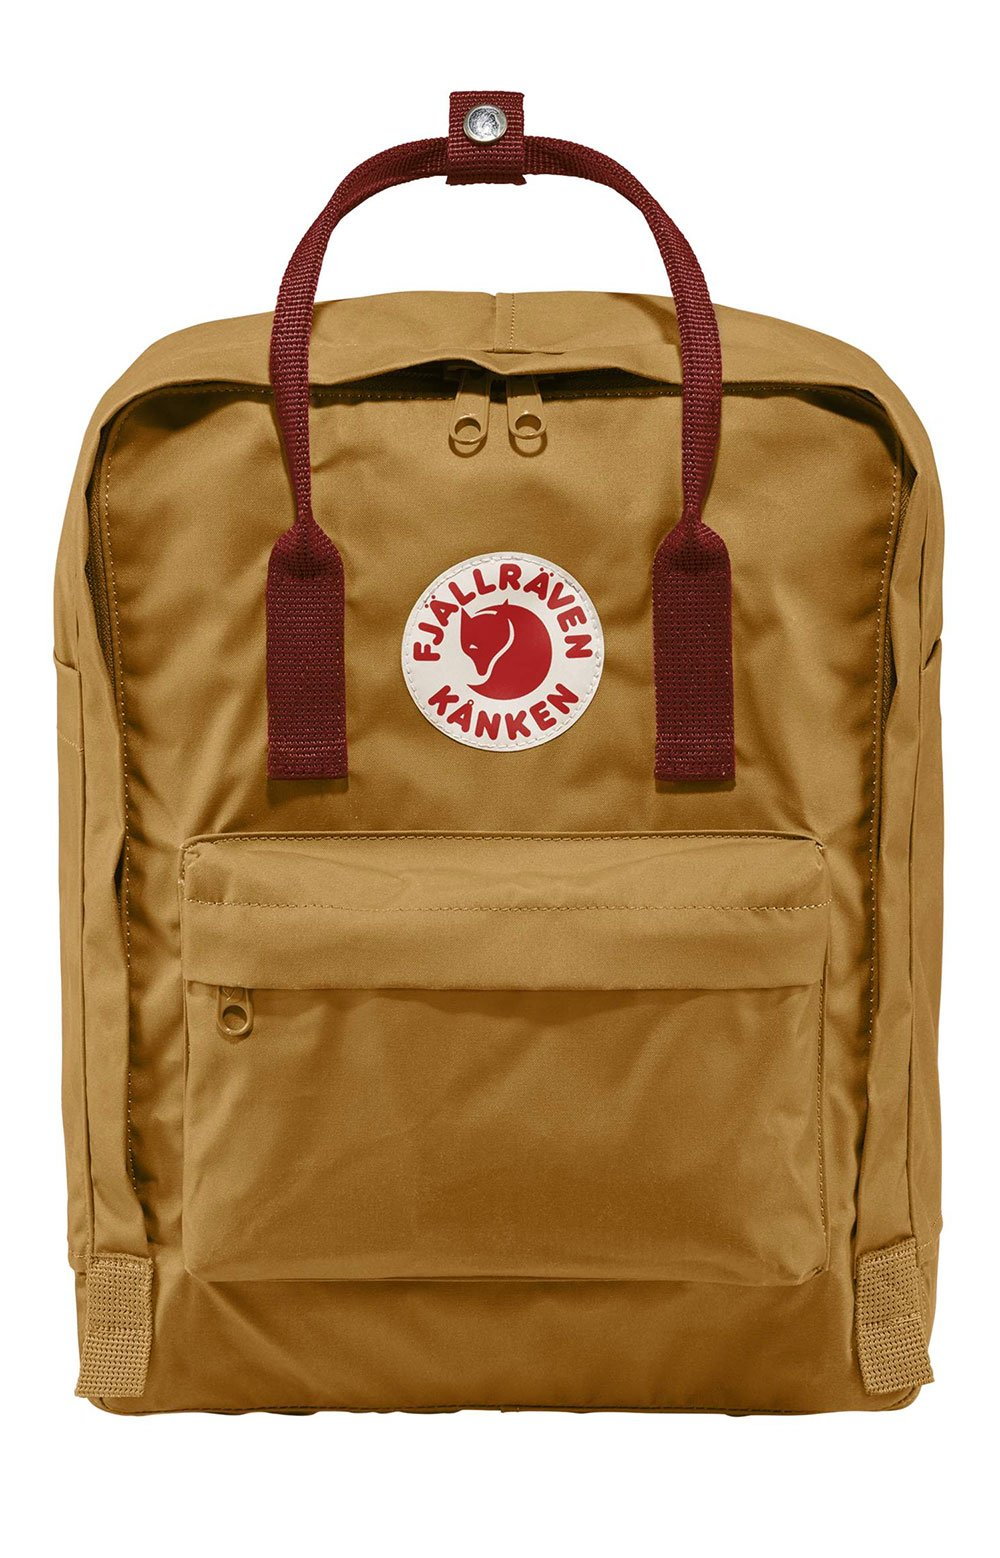 Kanken Backpack - Acorn/Ox Red